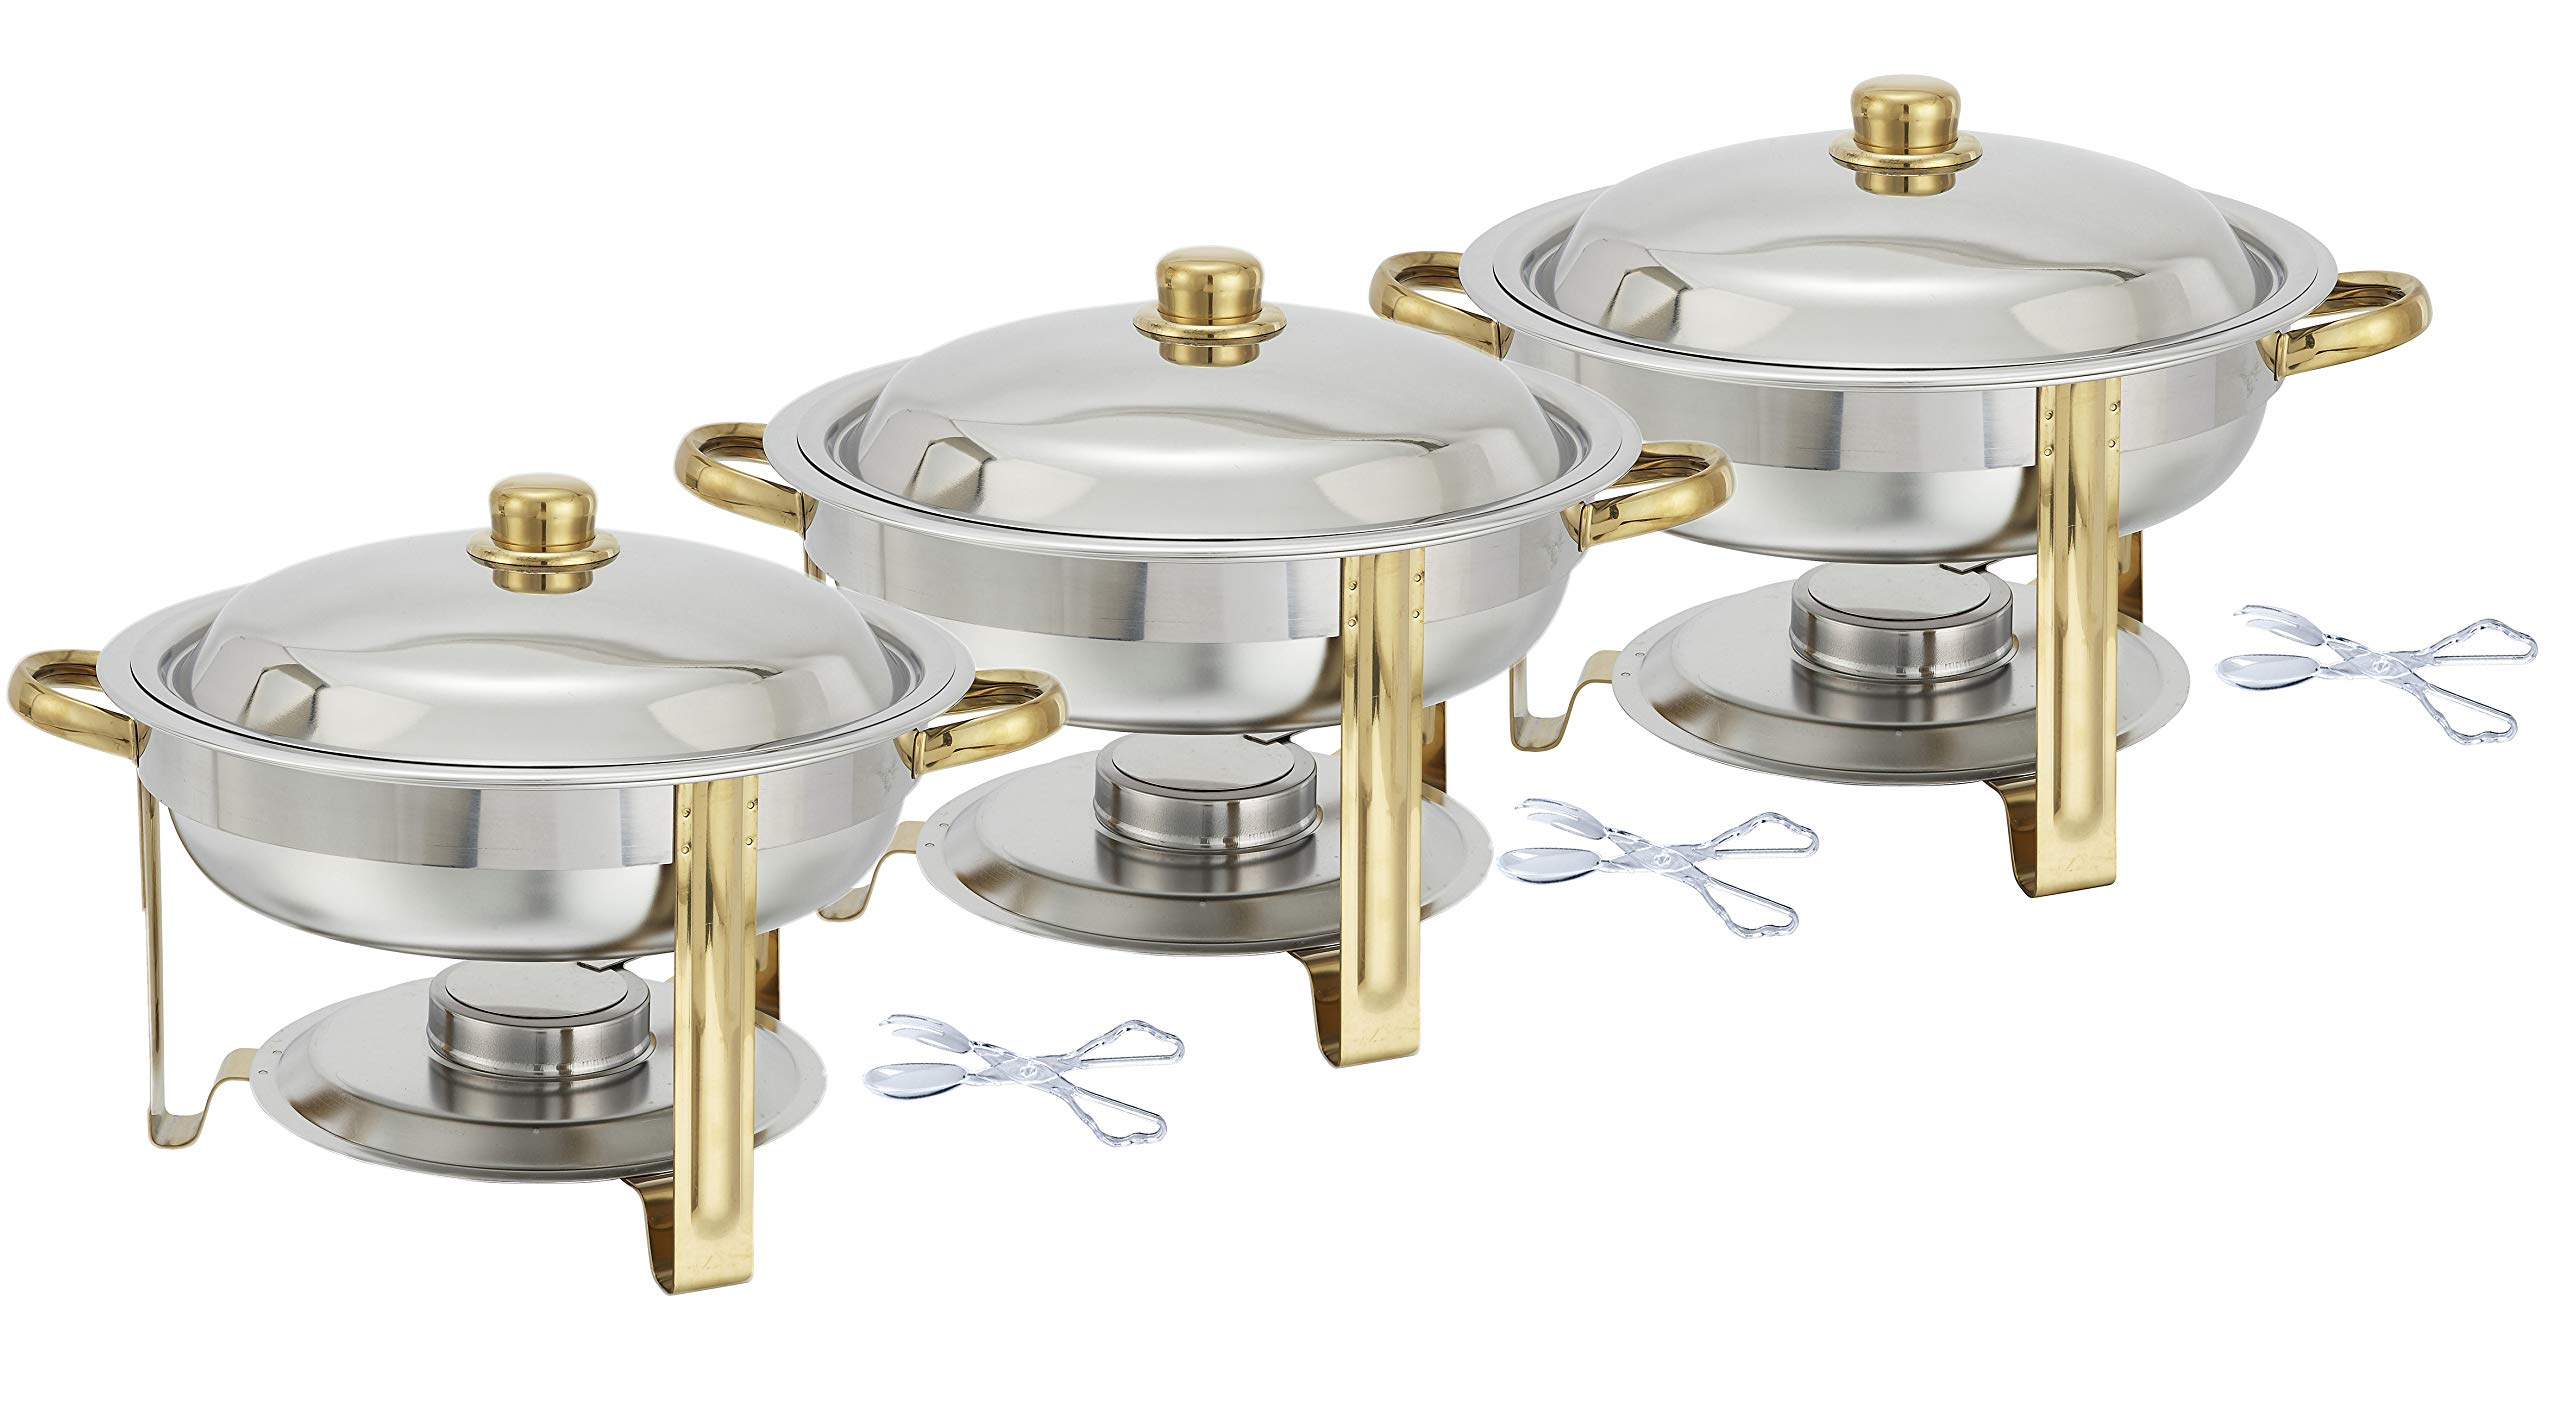 Tiger Chef 3-Pack 4 Quart Round Chafing Dish Buffet Warmer Set, Gold Accented Chafer, Includes Plastic Tong by Tiger Chef